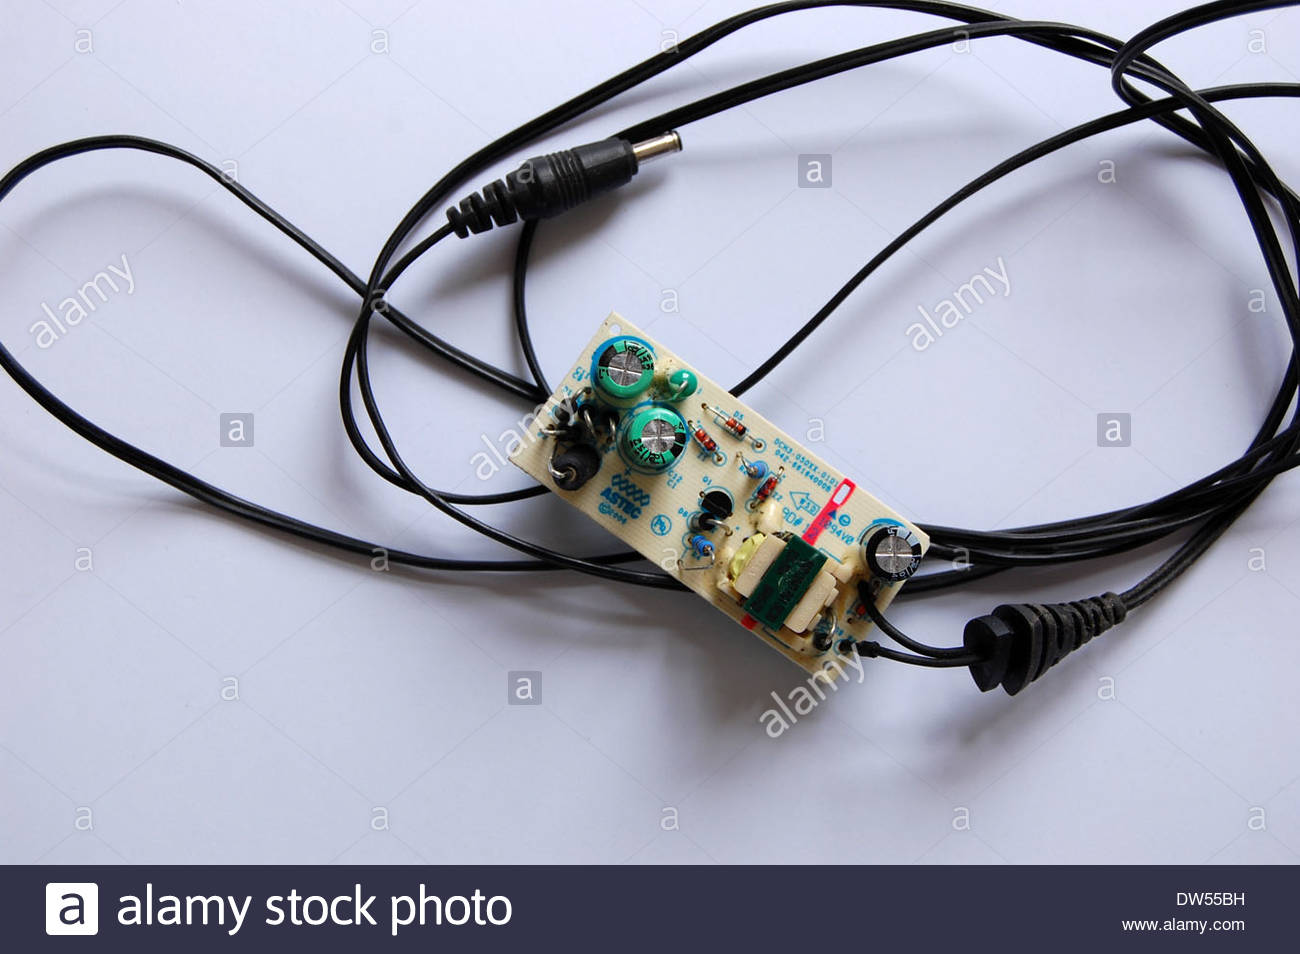 hight resolution of closeup studio shot cell phone telephone cellphone battery charger with cover removed to show electronic circuits inside